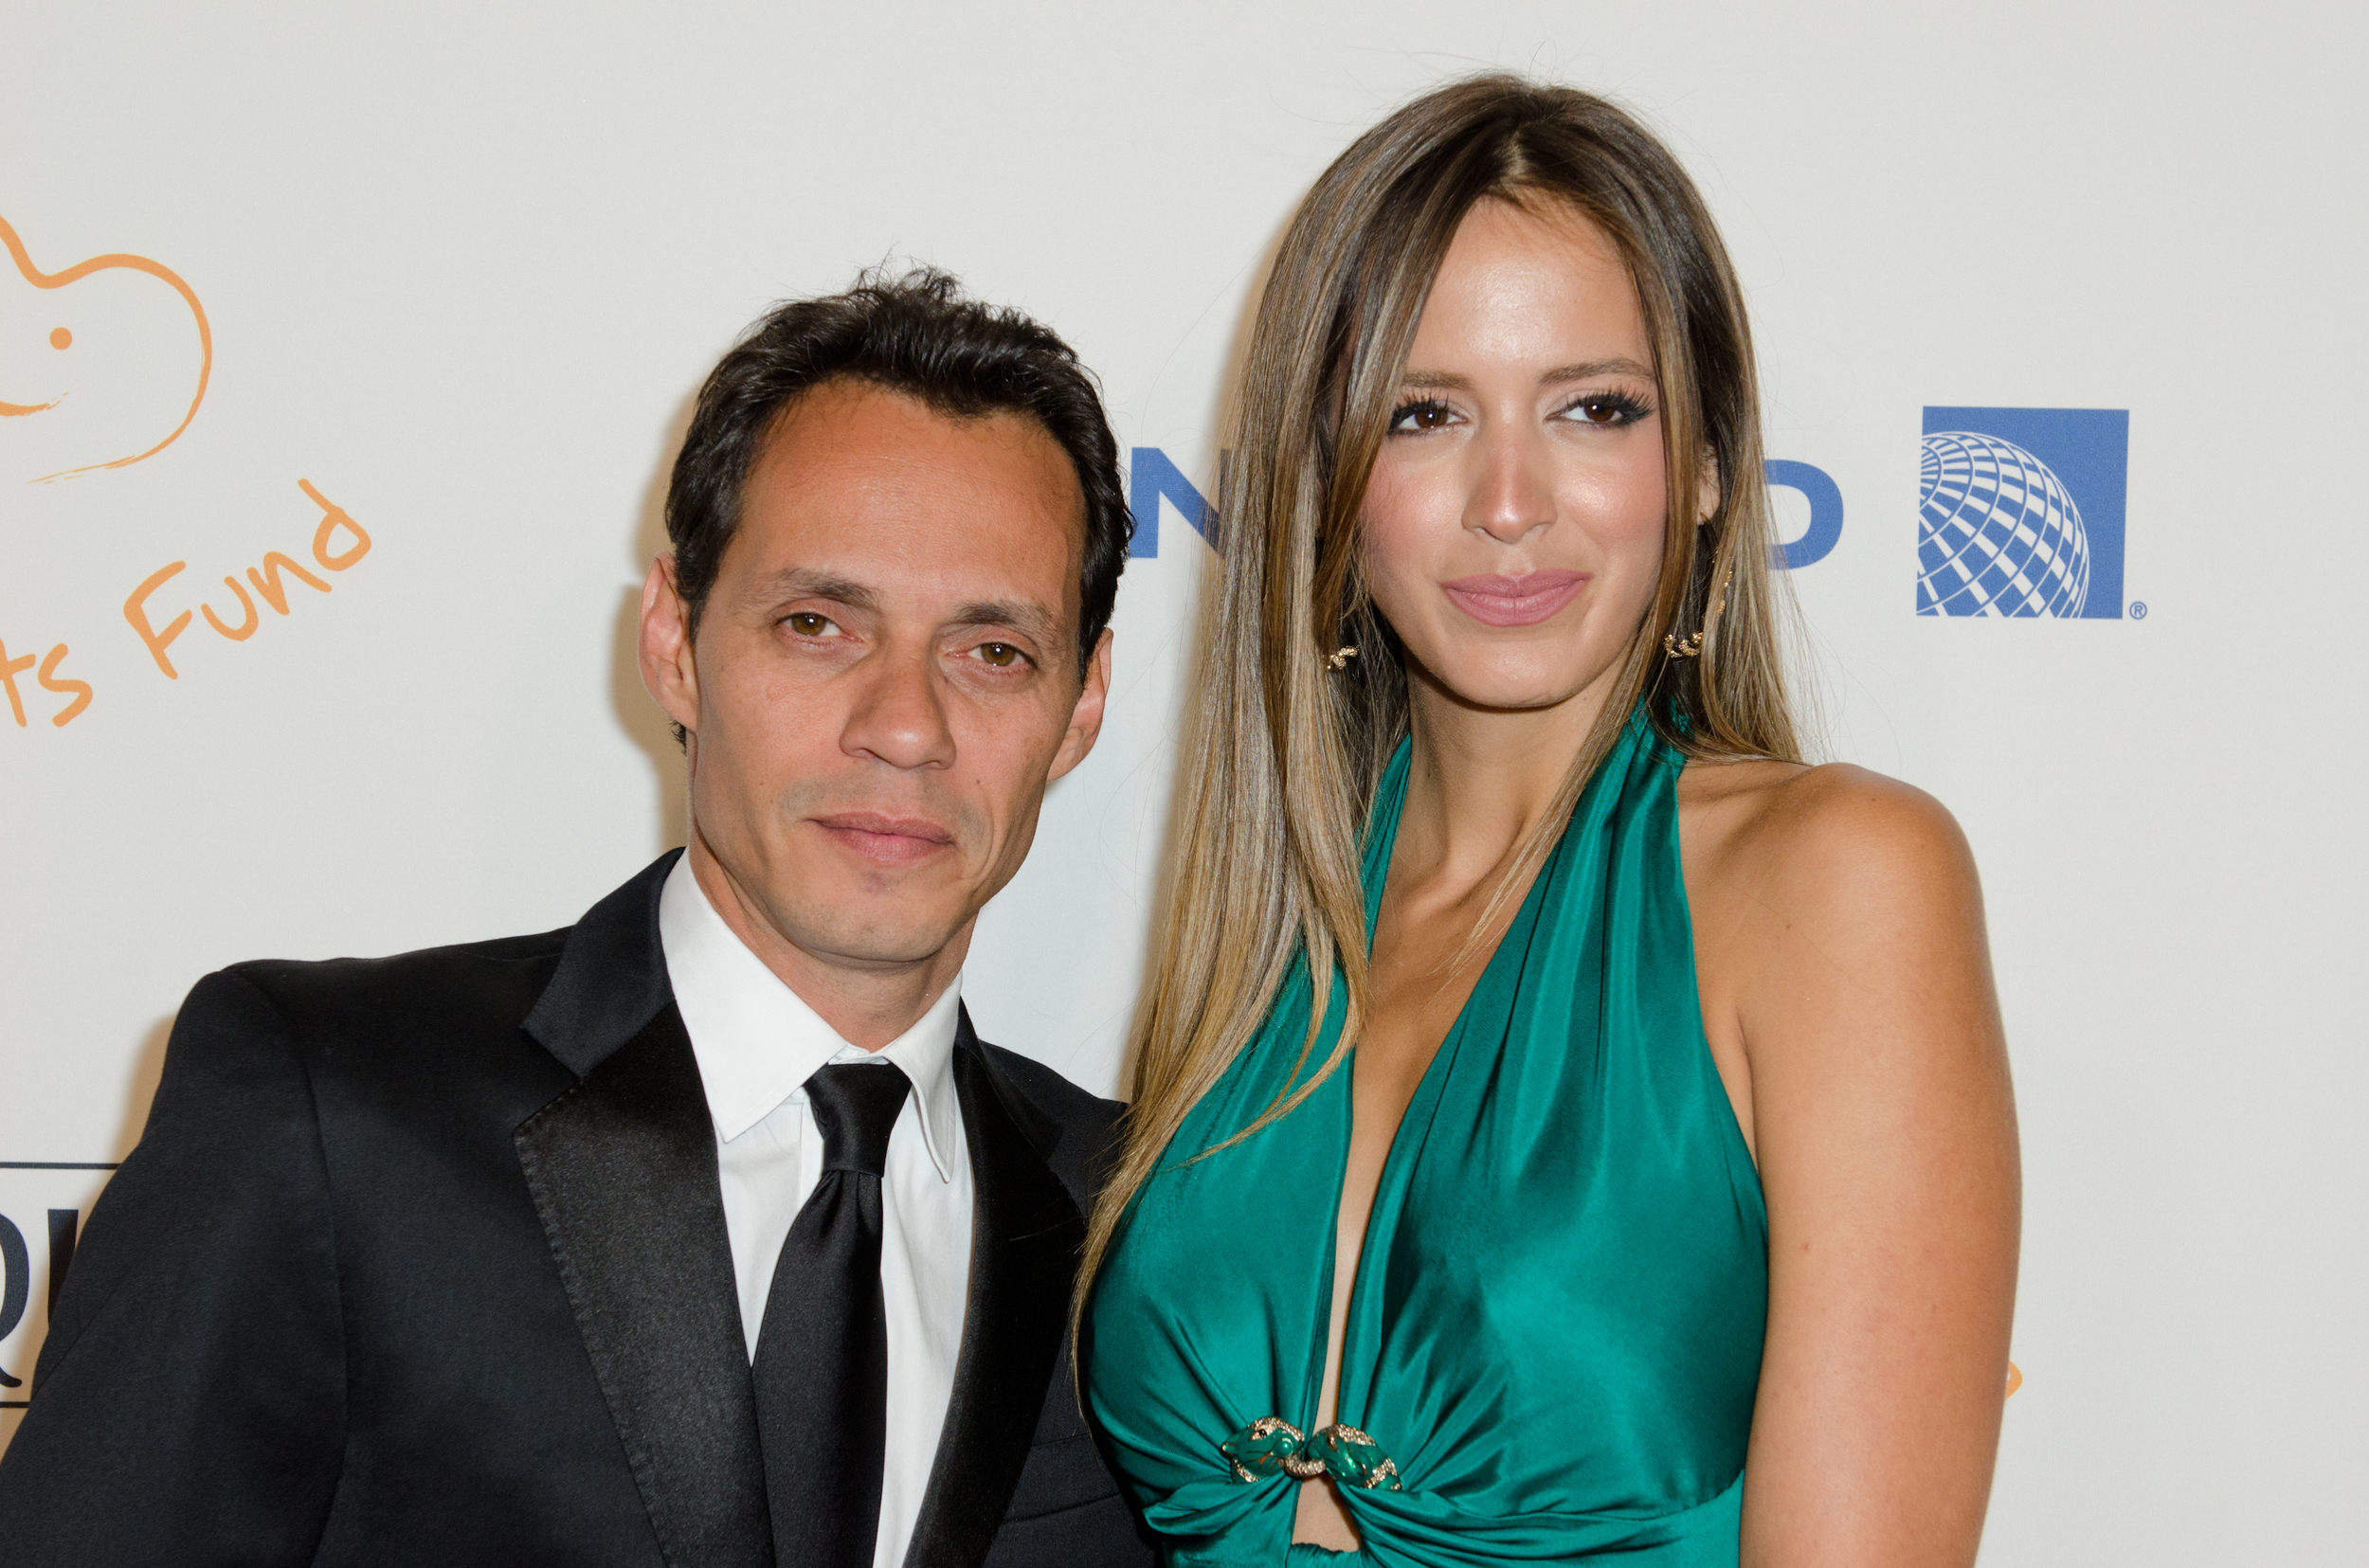 Marc anthony engaged to shannon de lima aol com